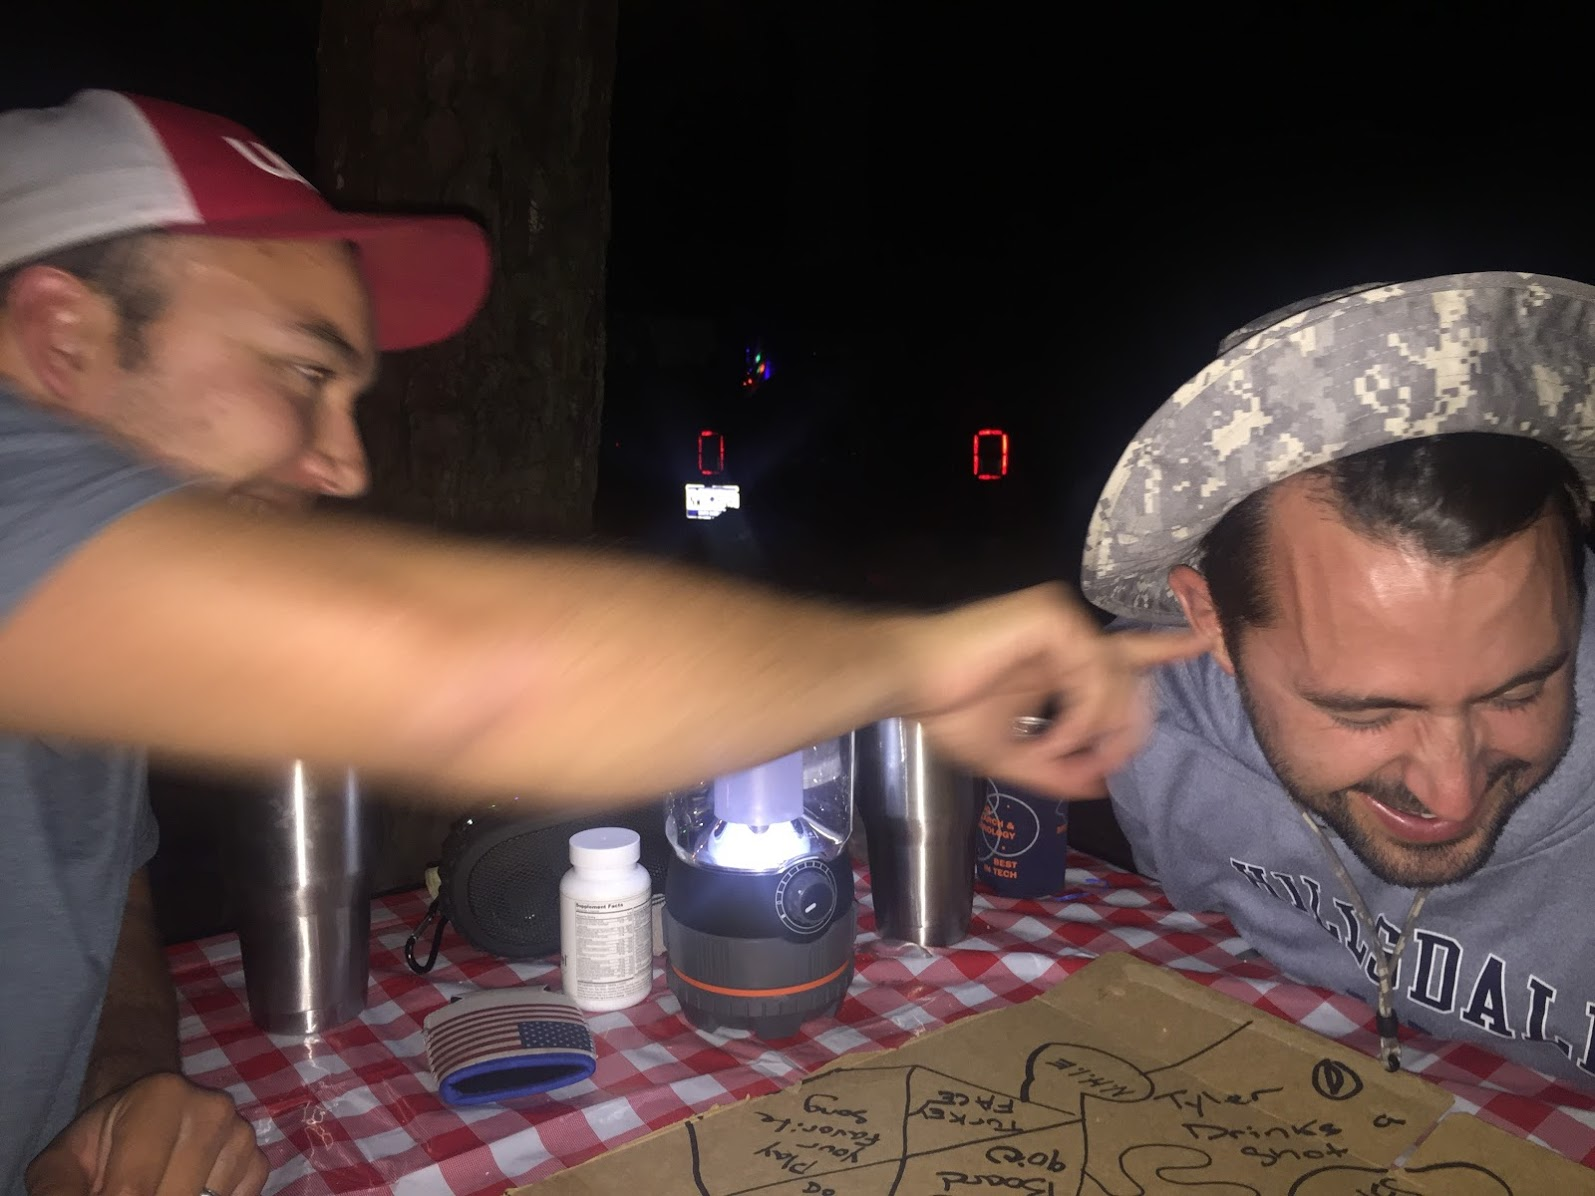 Camping bromance + wet willy + quarters game